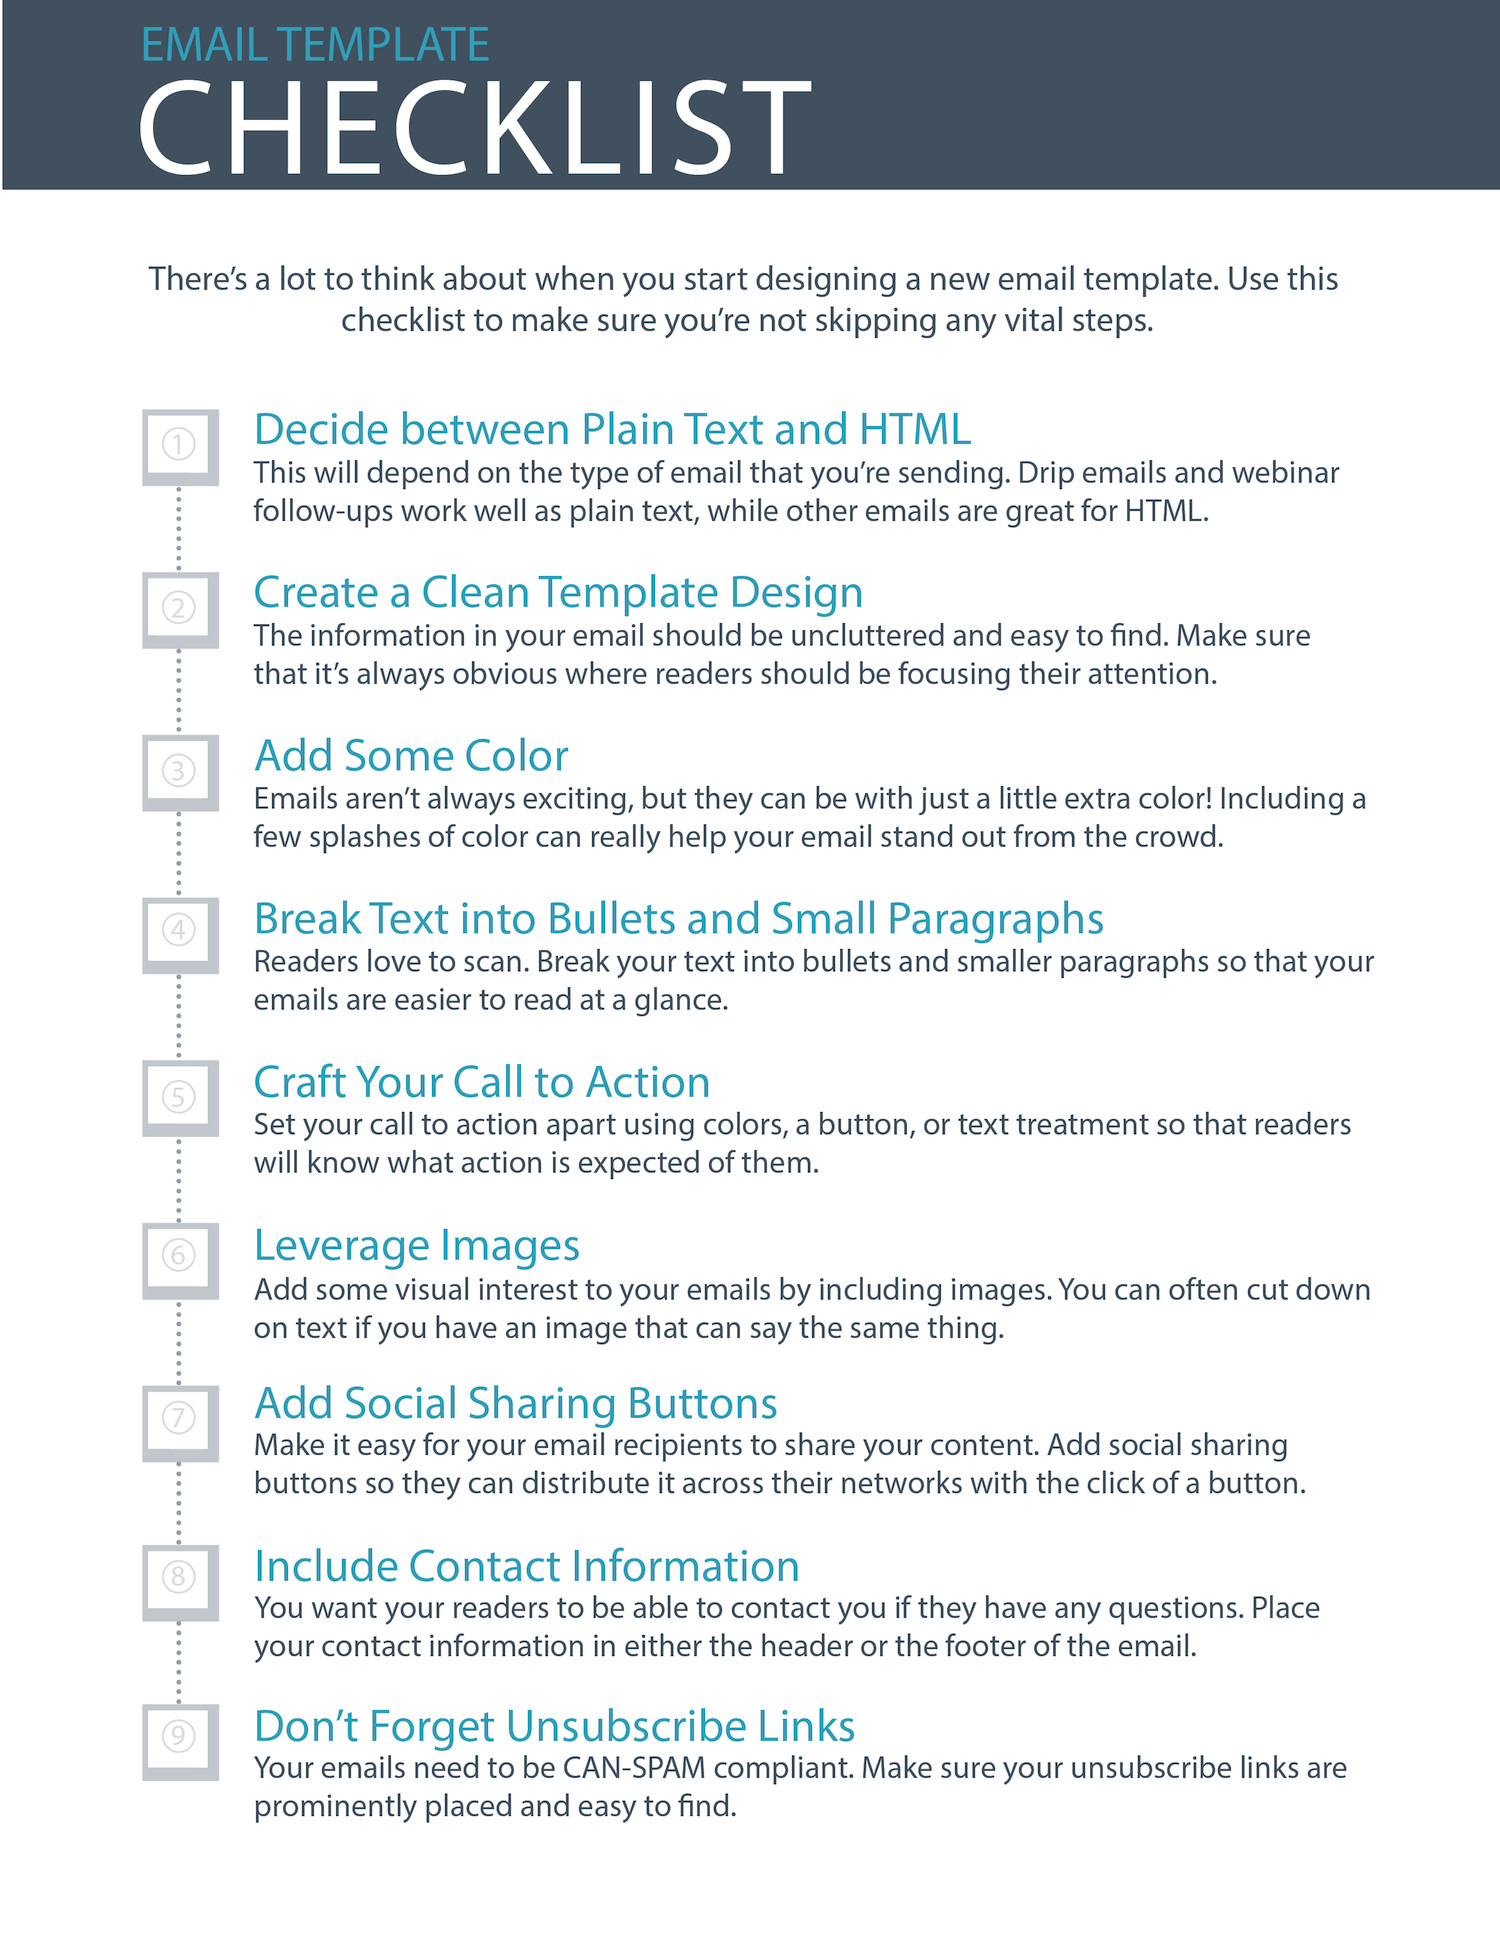 Personal Care Checklist Template Gallery Of if You Ve Ever Opened An Email Editor to Start Designing A